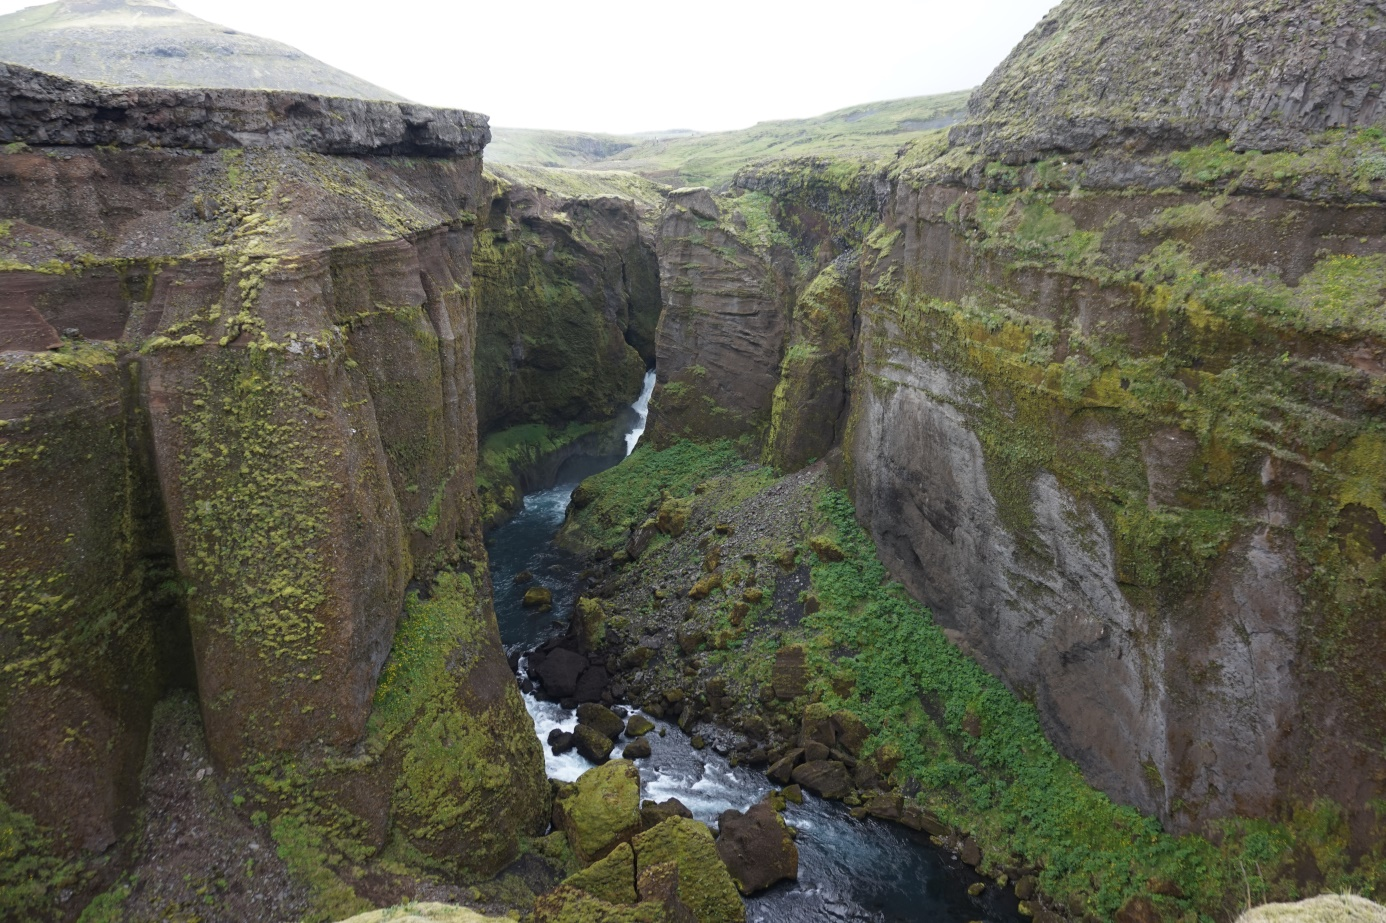 Fjaðrárgljúfur canyion in South Iceland